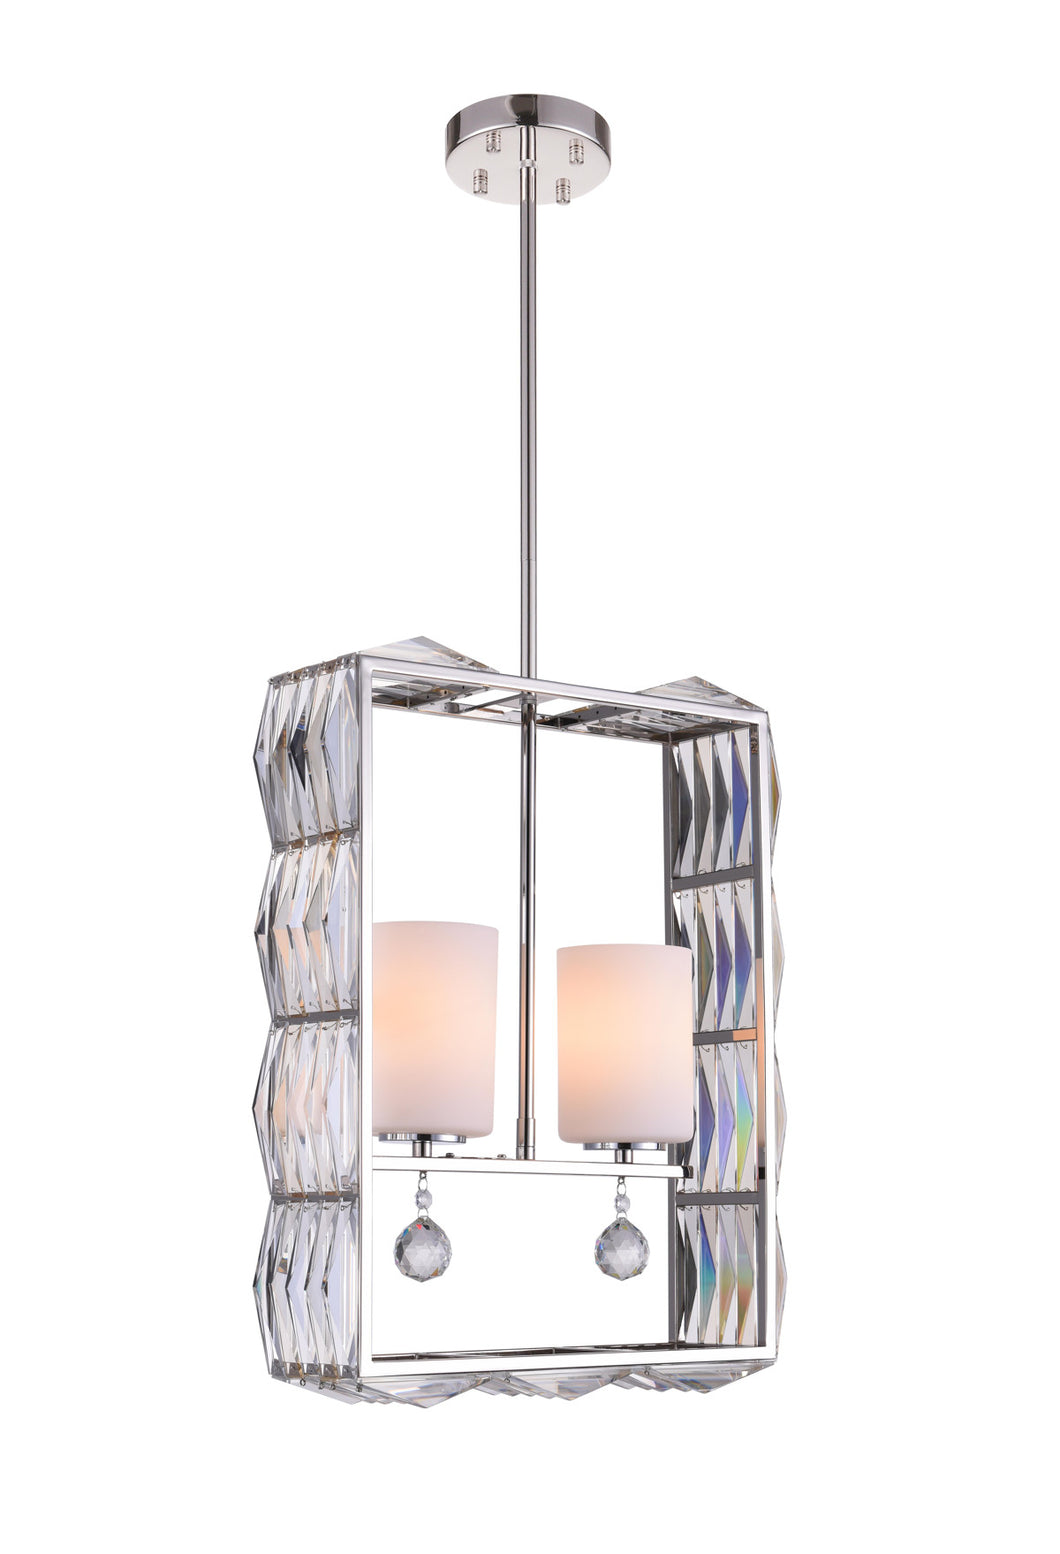 2 Light Down Chandelier with Bright Nickel finish